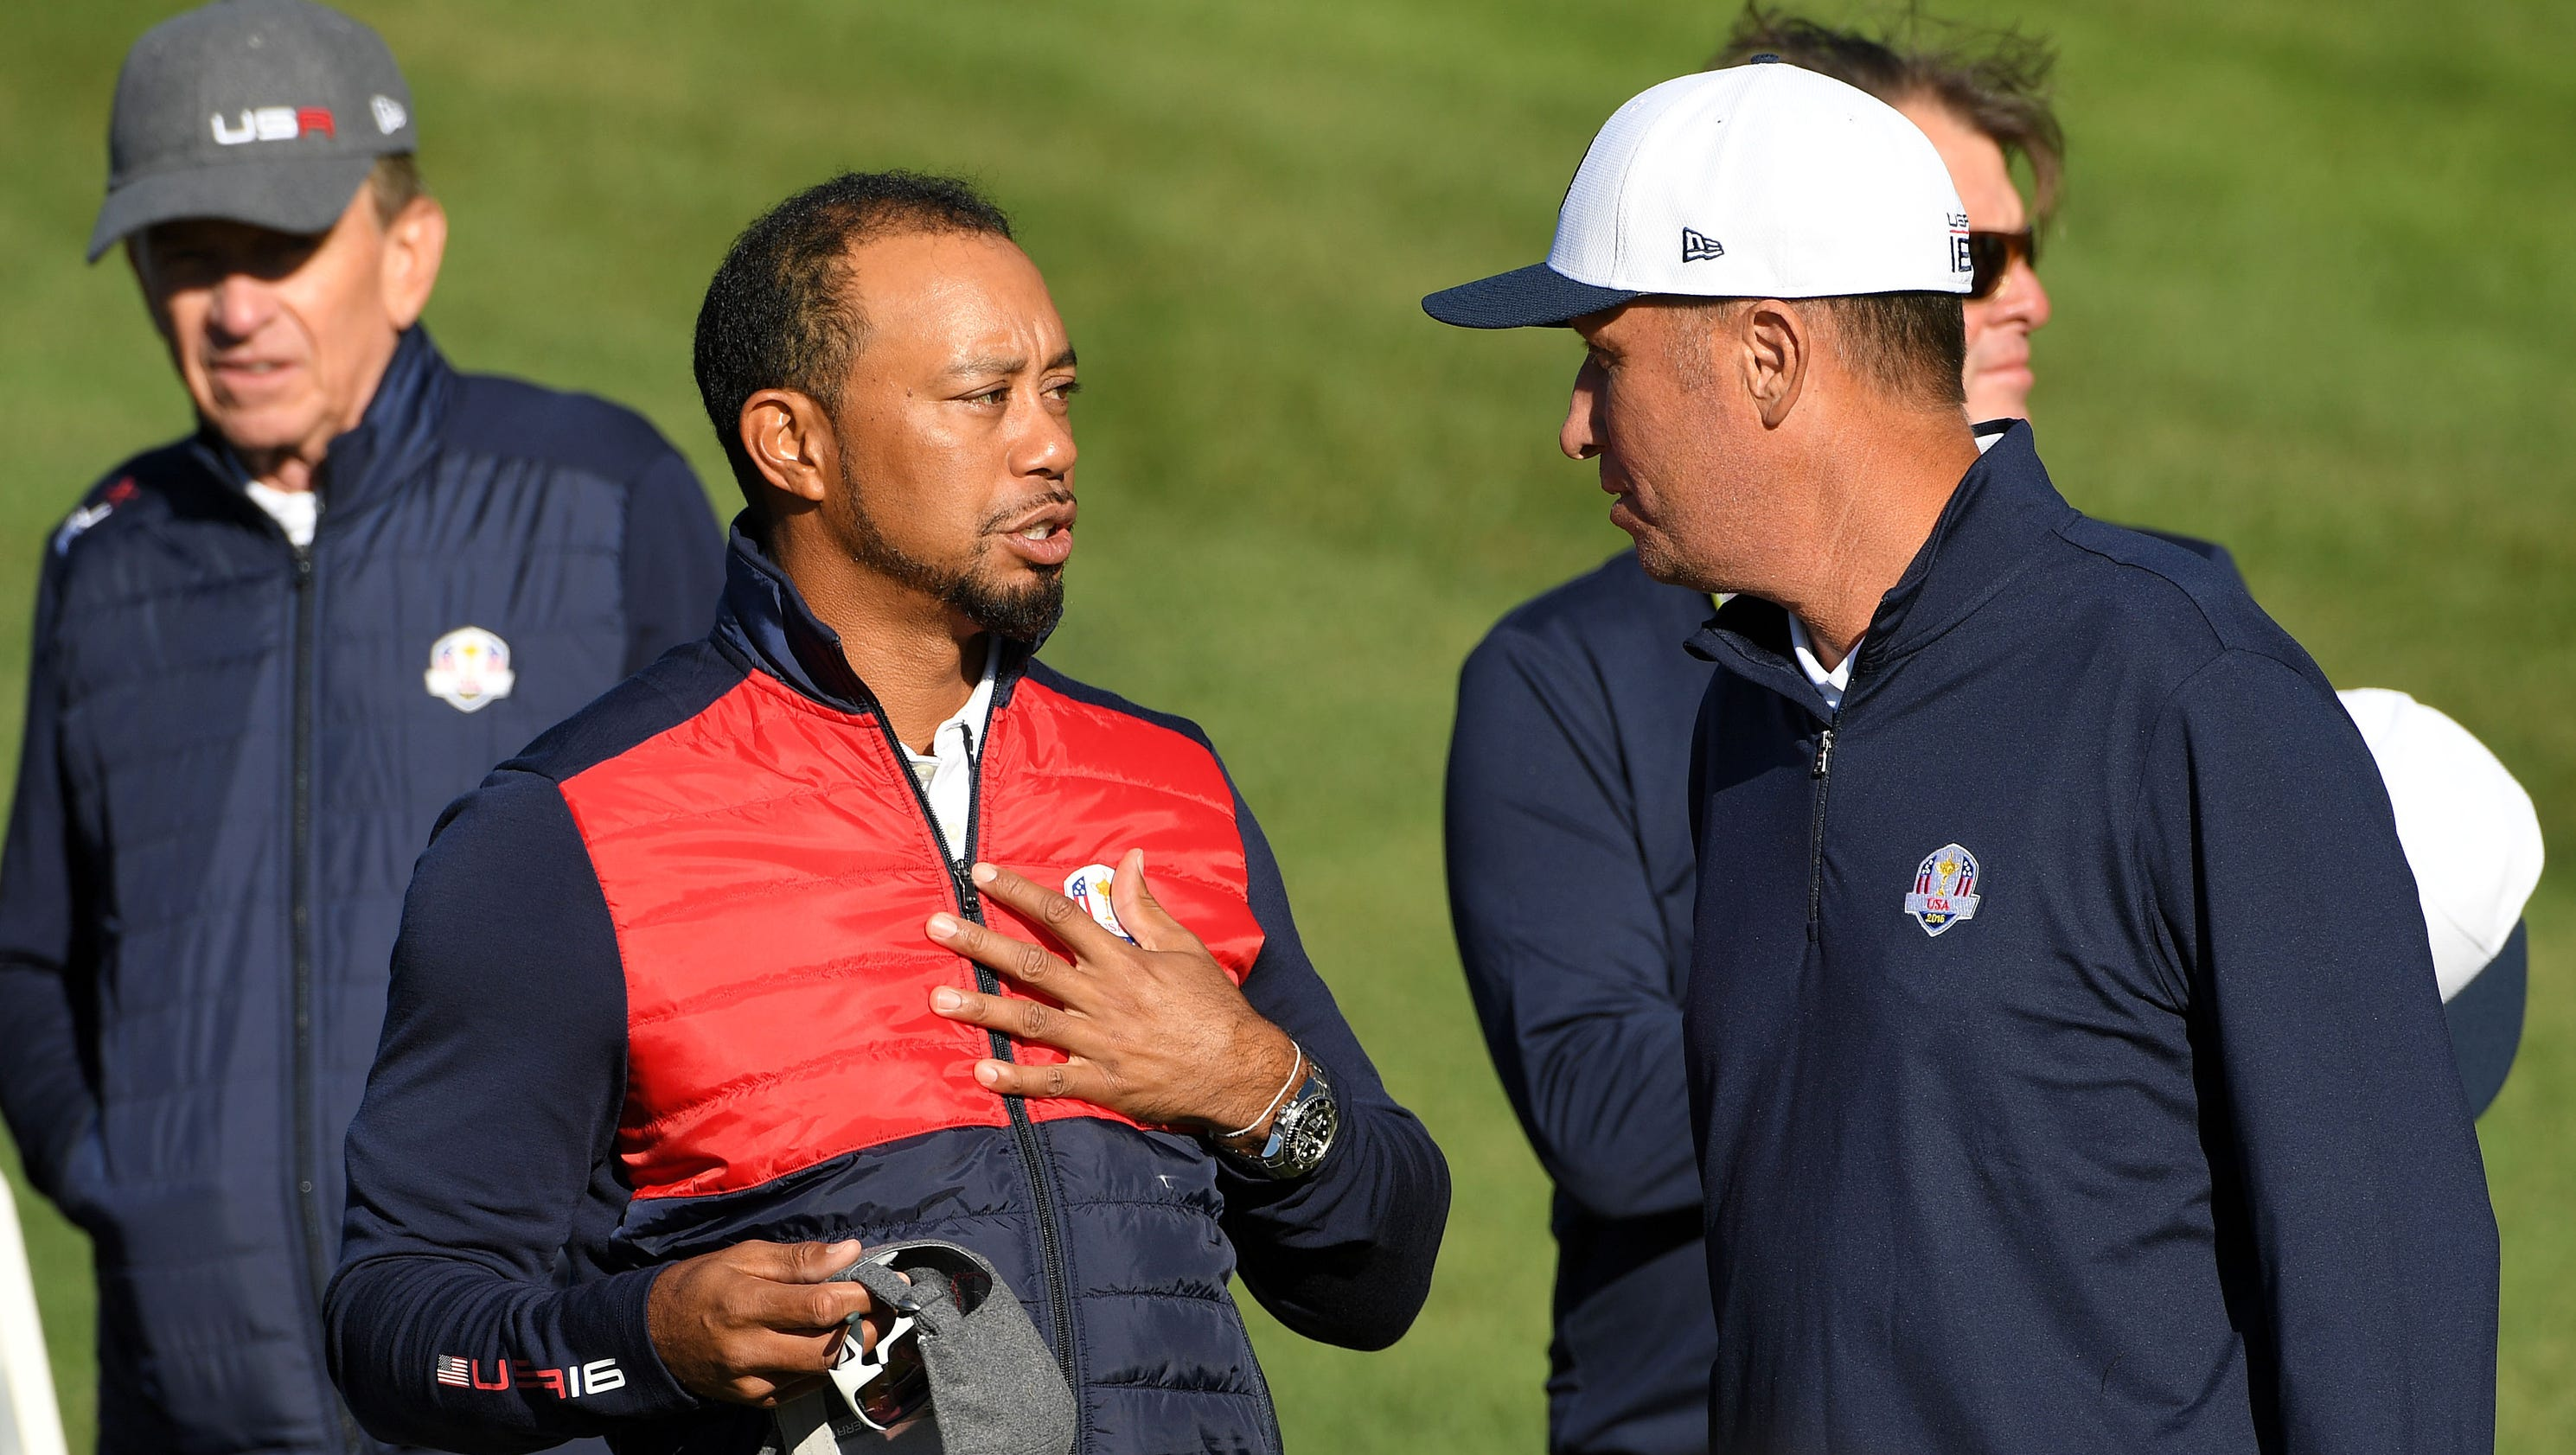 Usp_pga-_ryder_cup_-_practice_round